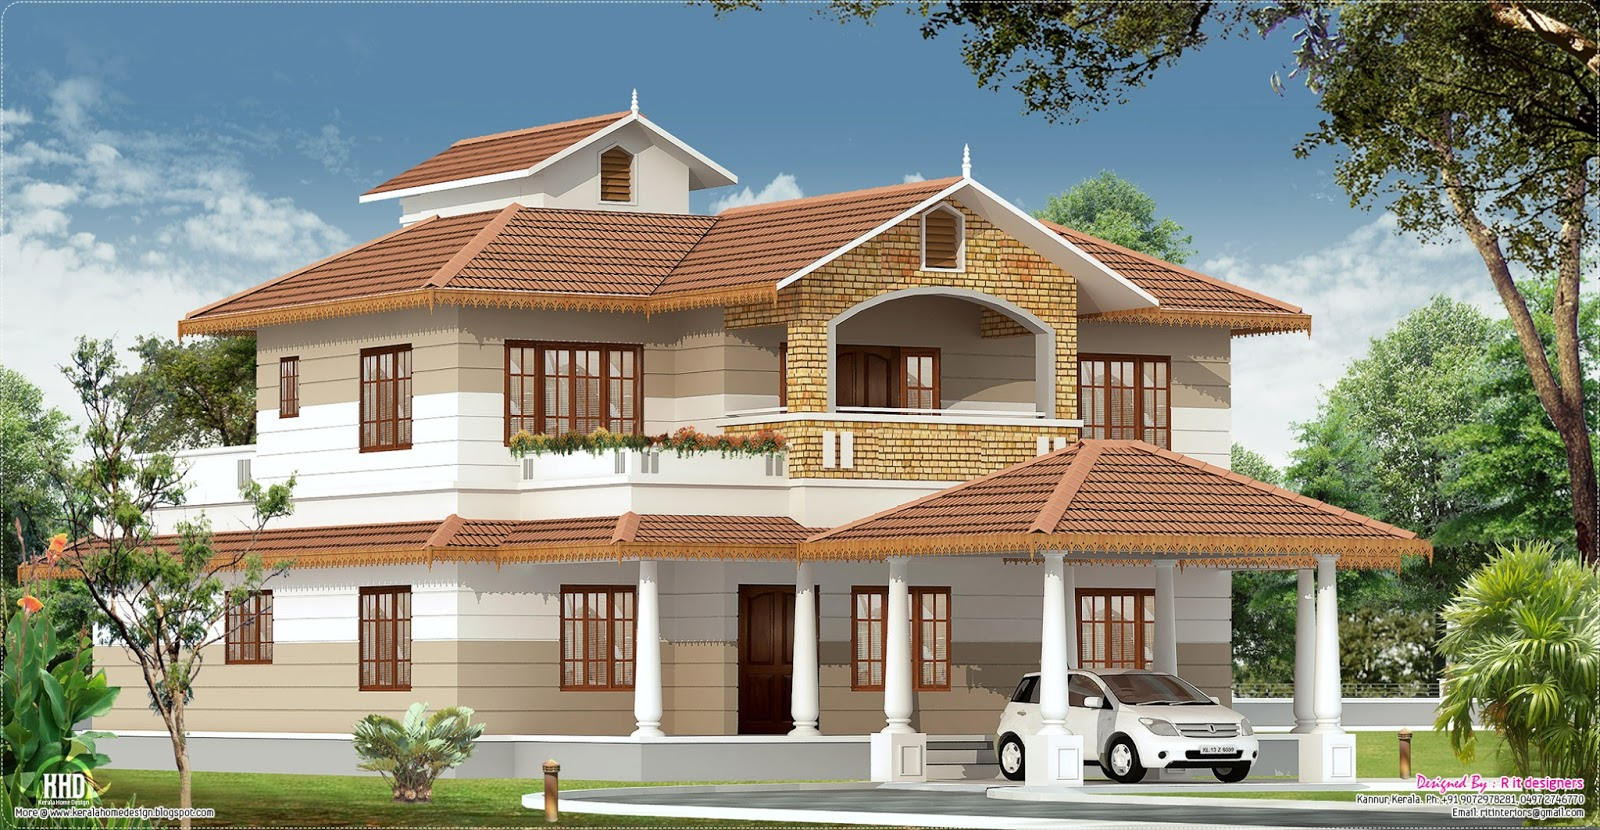 2700 kerala home with interior designs kerala for Www homedesign com